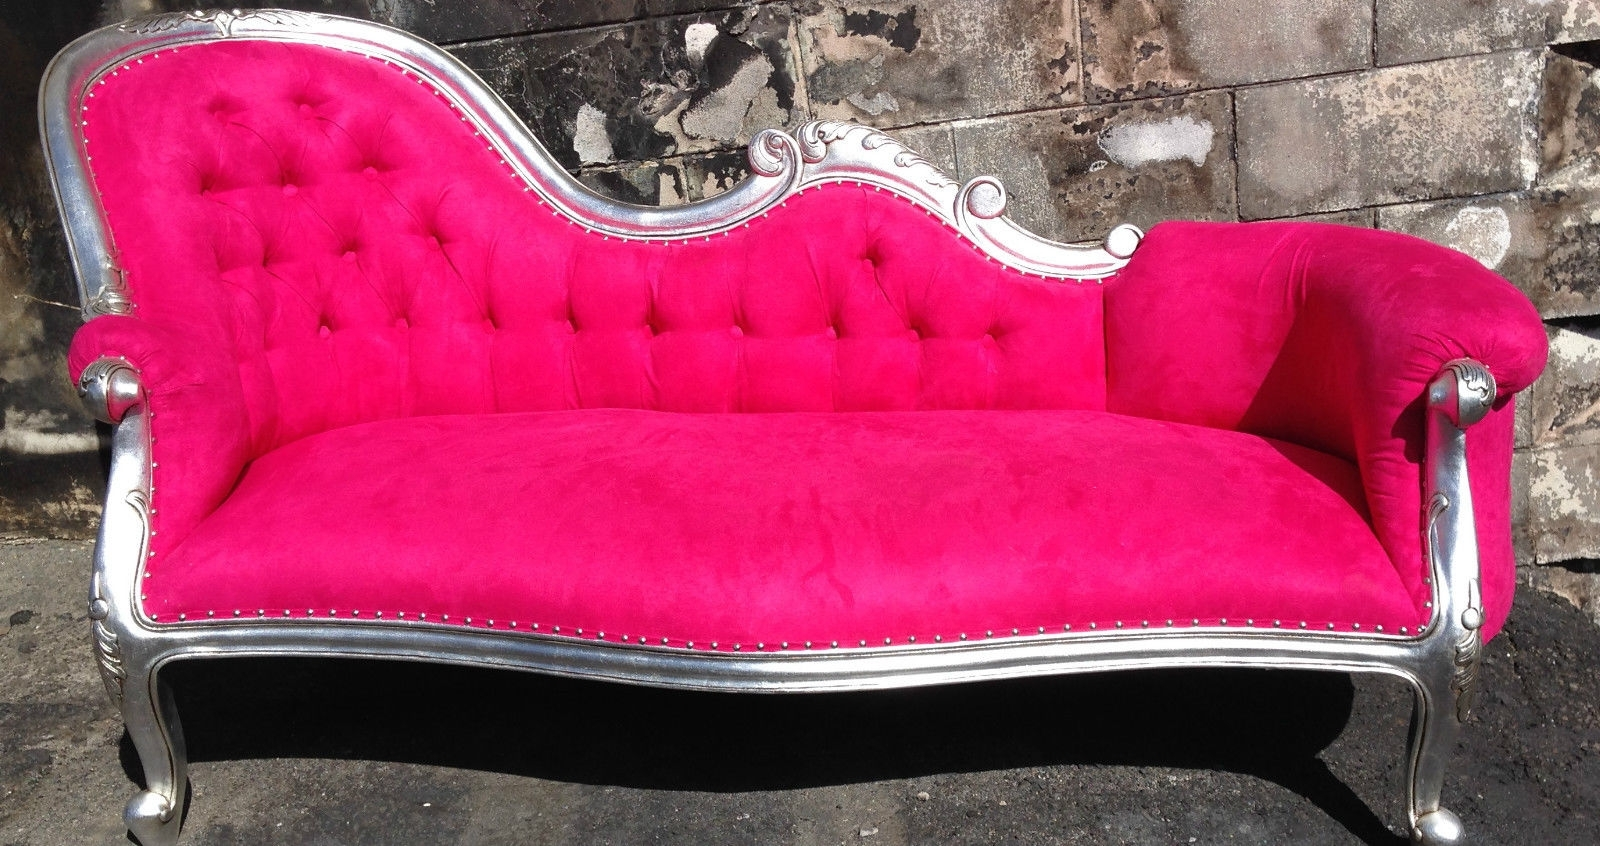 Rockstar Pink Chaise Lounge Chesterfield Sofa Queen Loveseat Couch Throughout Preferred Pink Chaise Lounges (View 13 of 15)